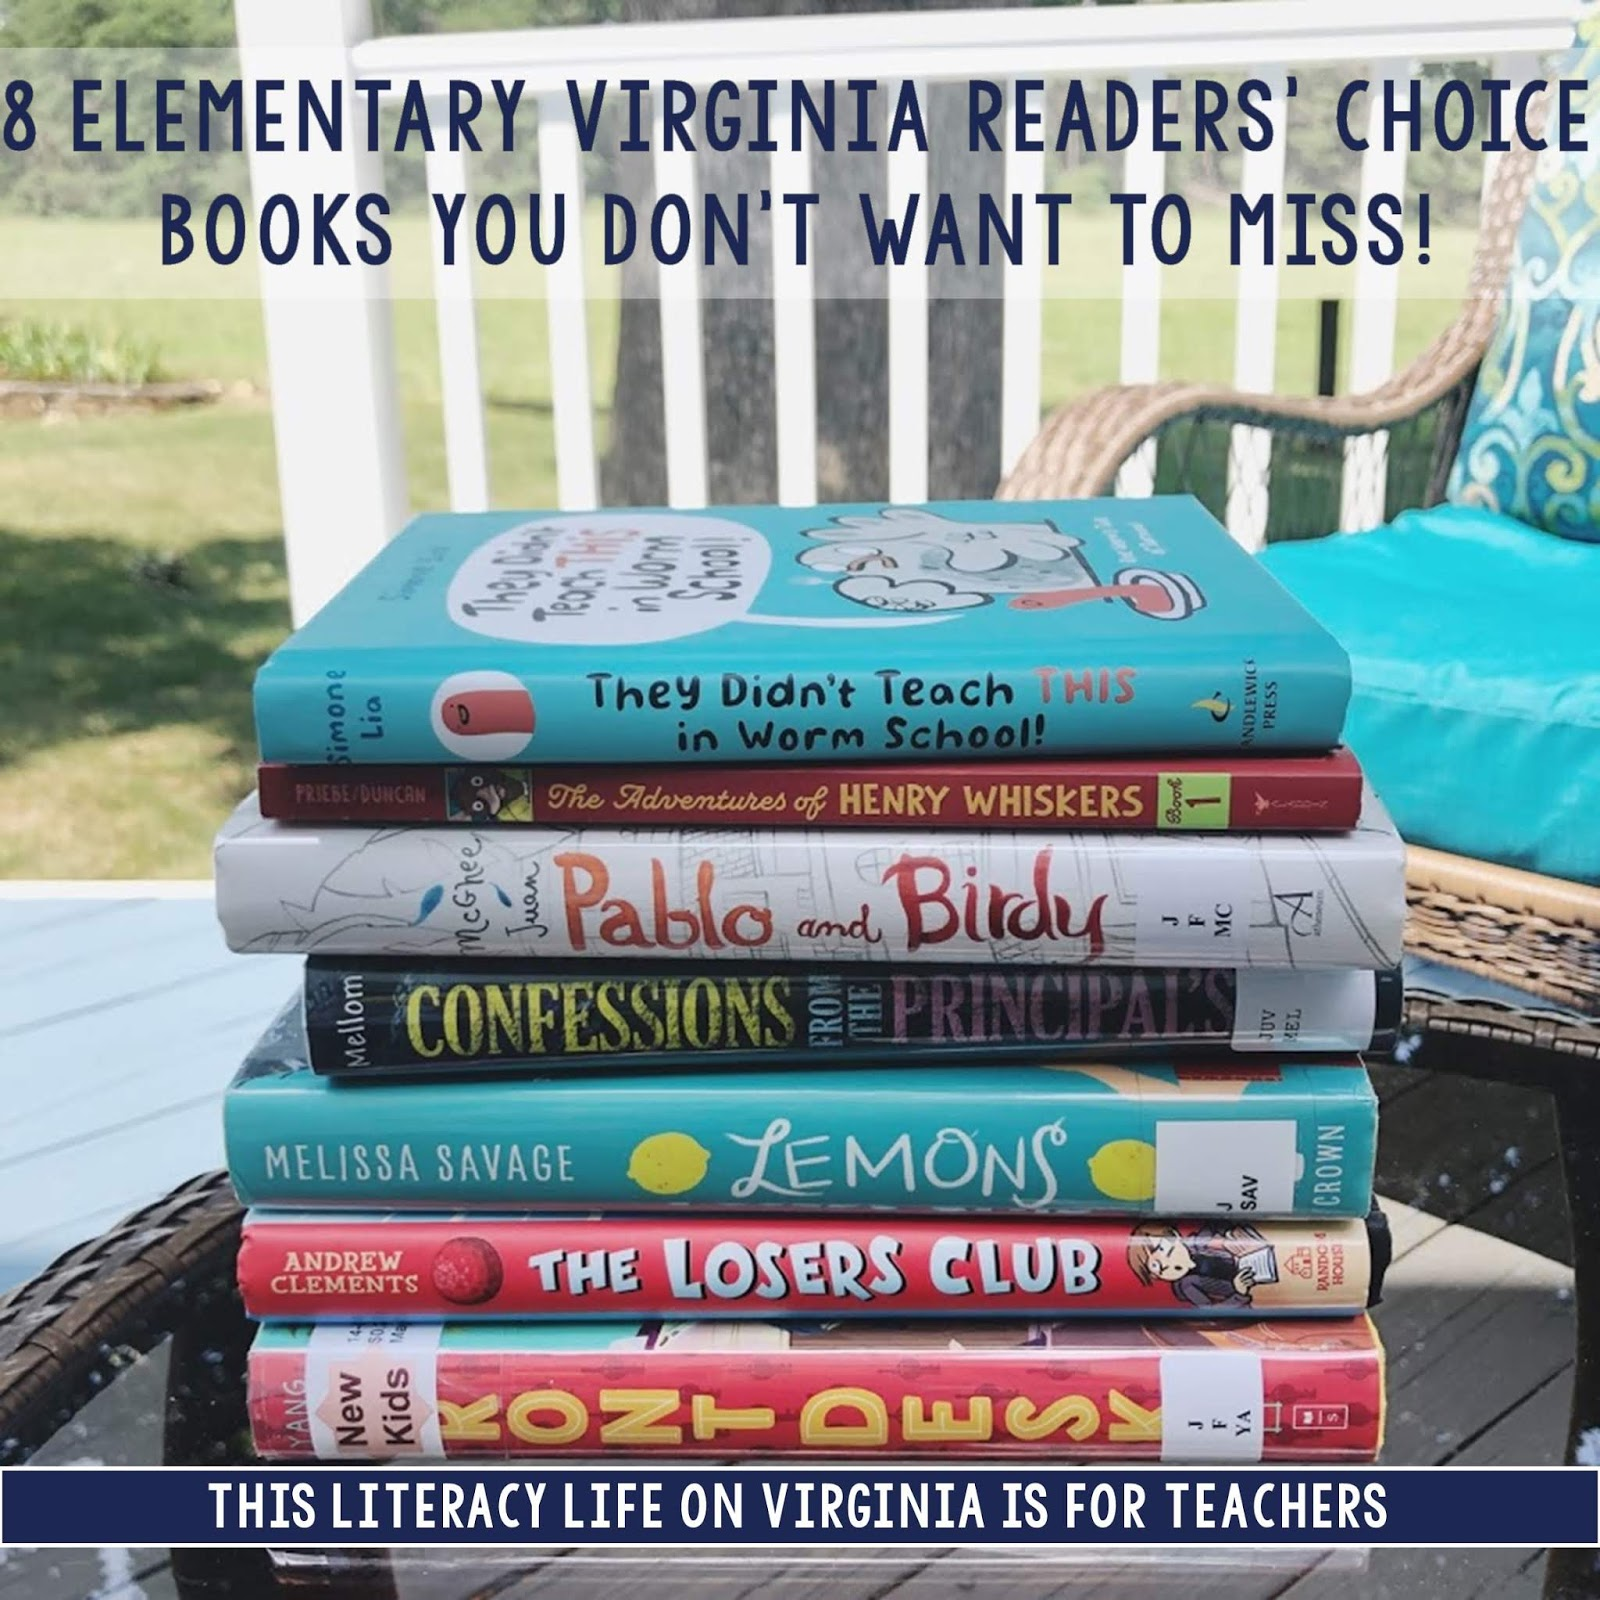 You don't want to miss out on these fun Virginia Readers' Choice chapter books that can be used in so many ways.